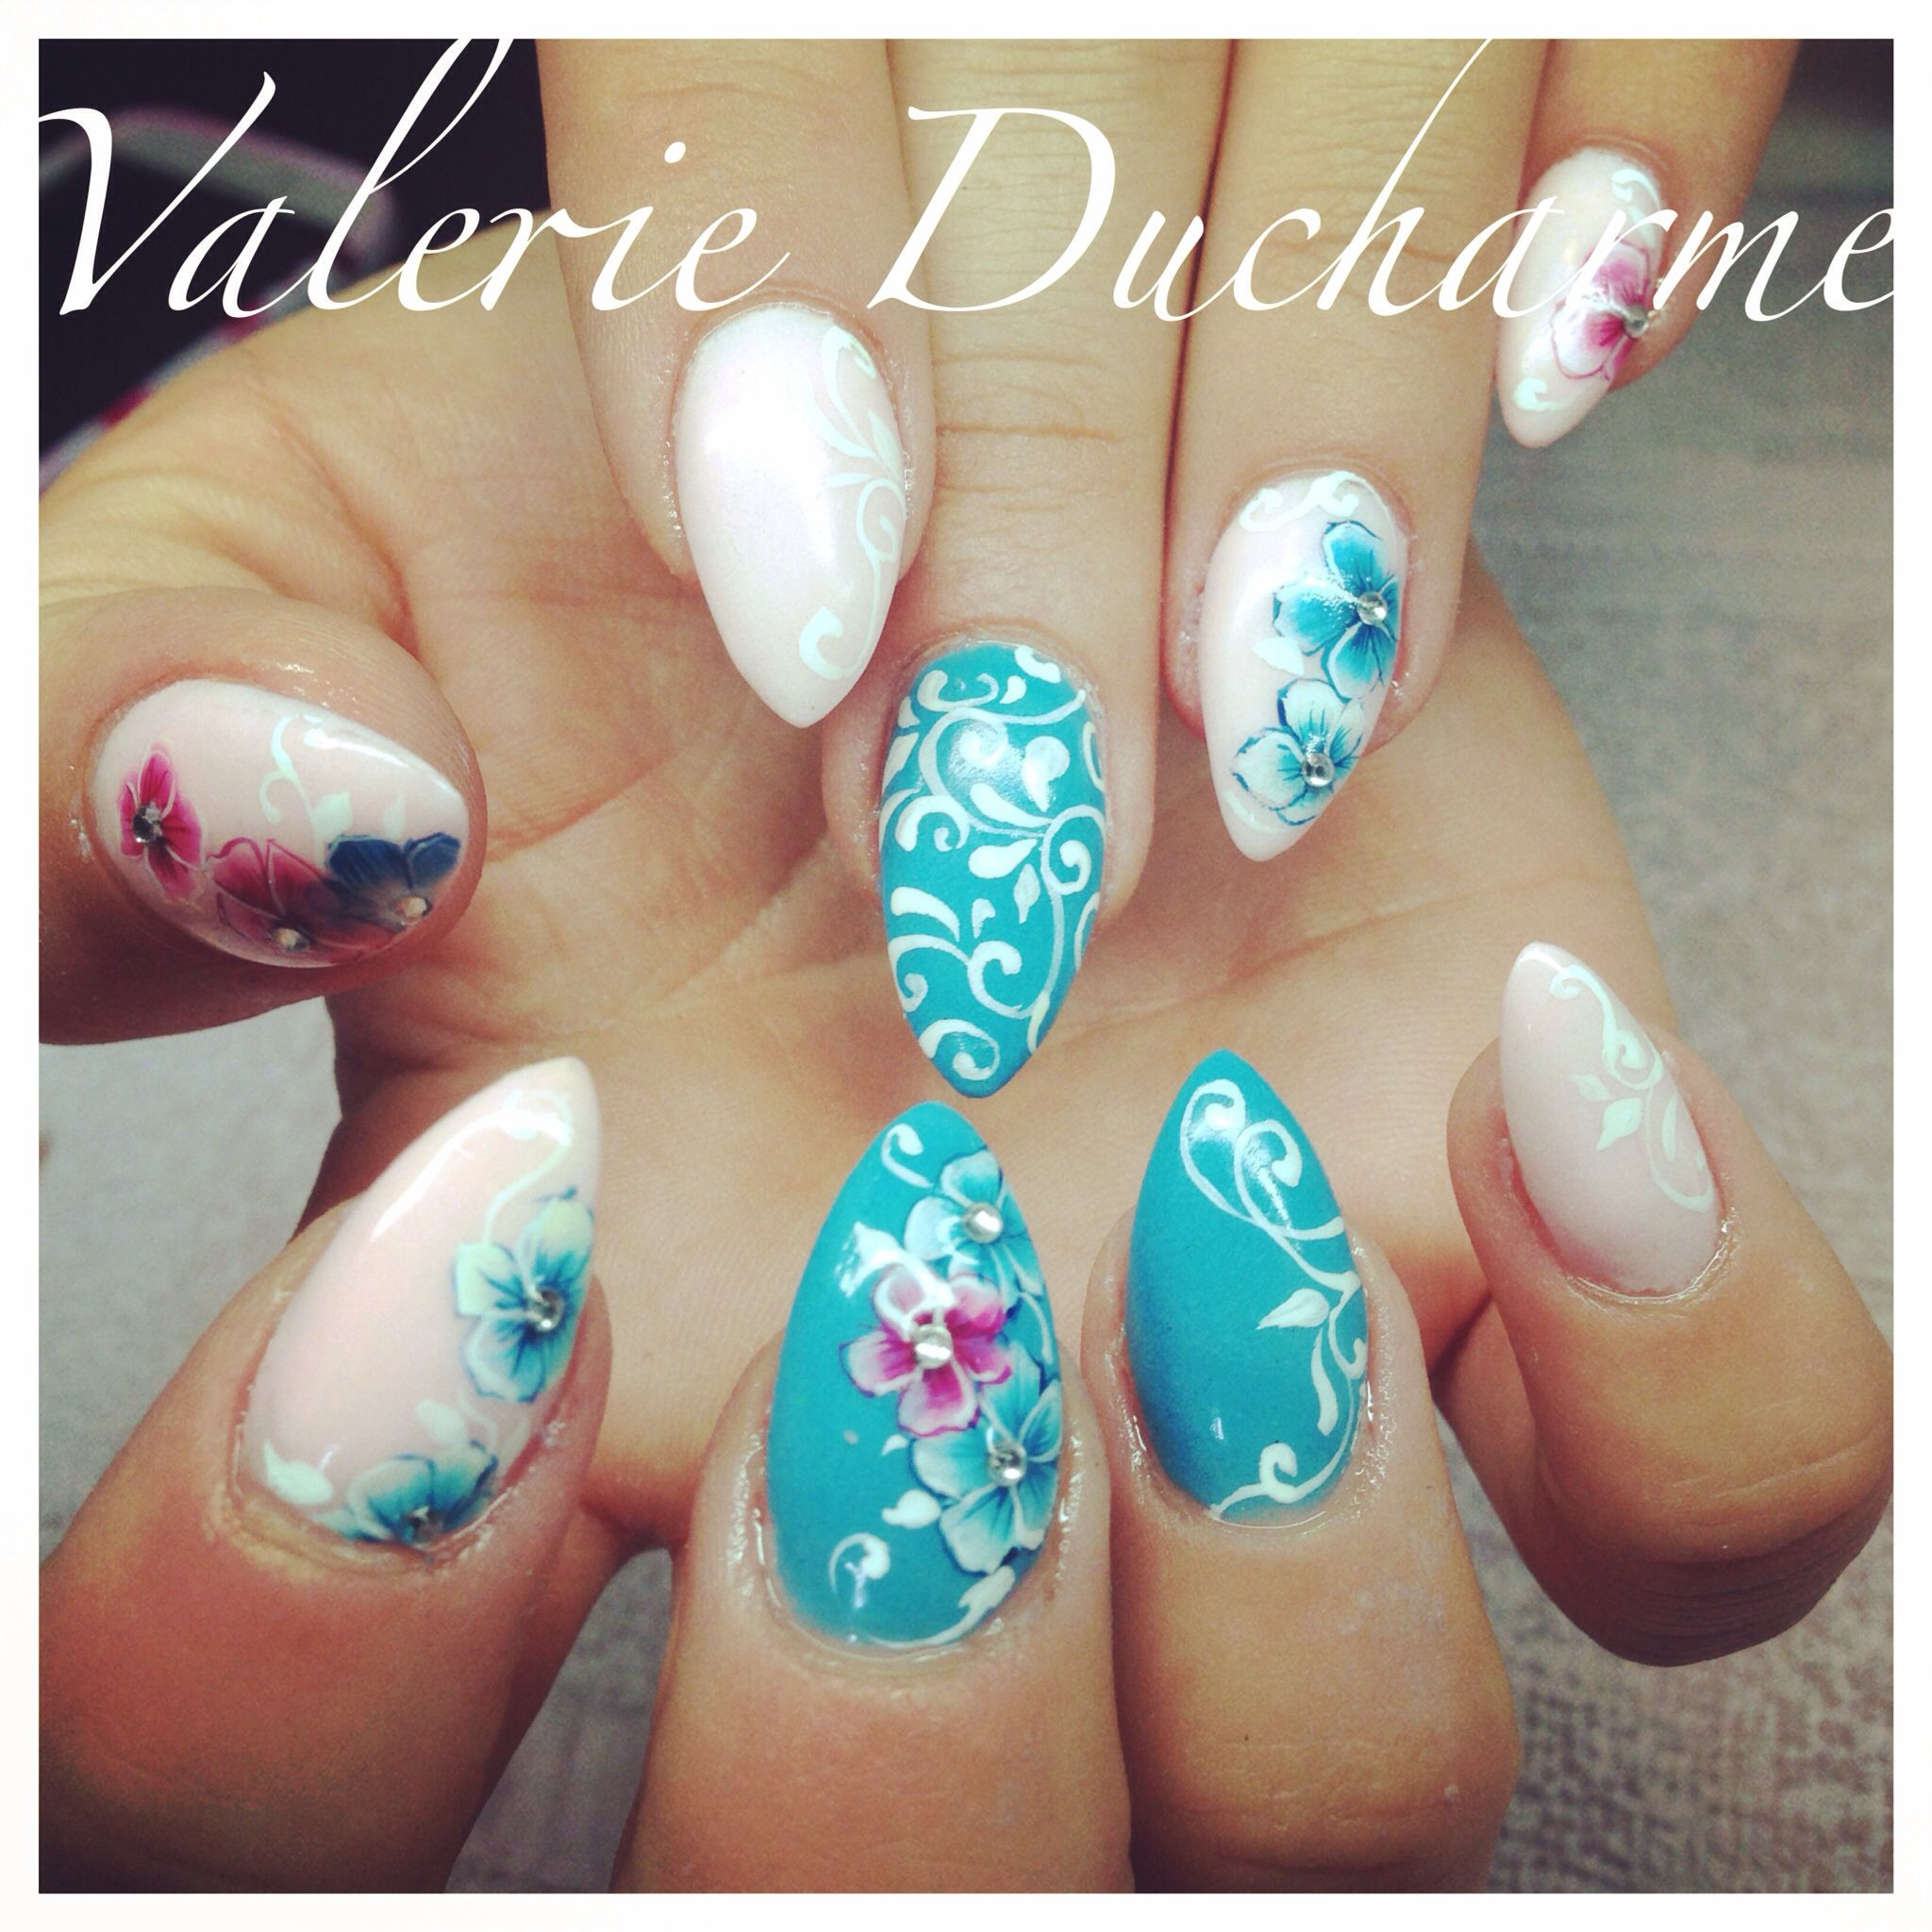 By Valrie Ducharme At Studio 2075 Nails Art Nail Design